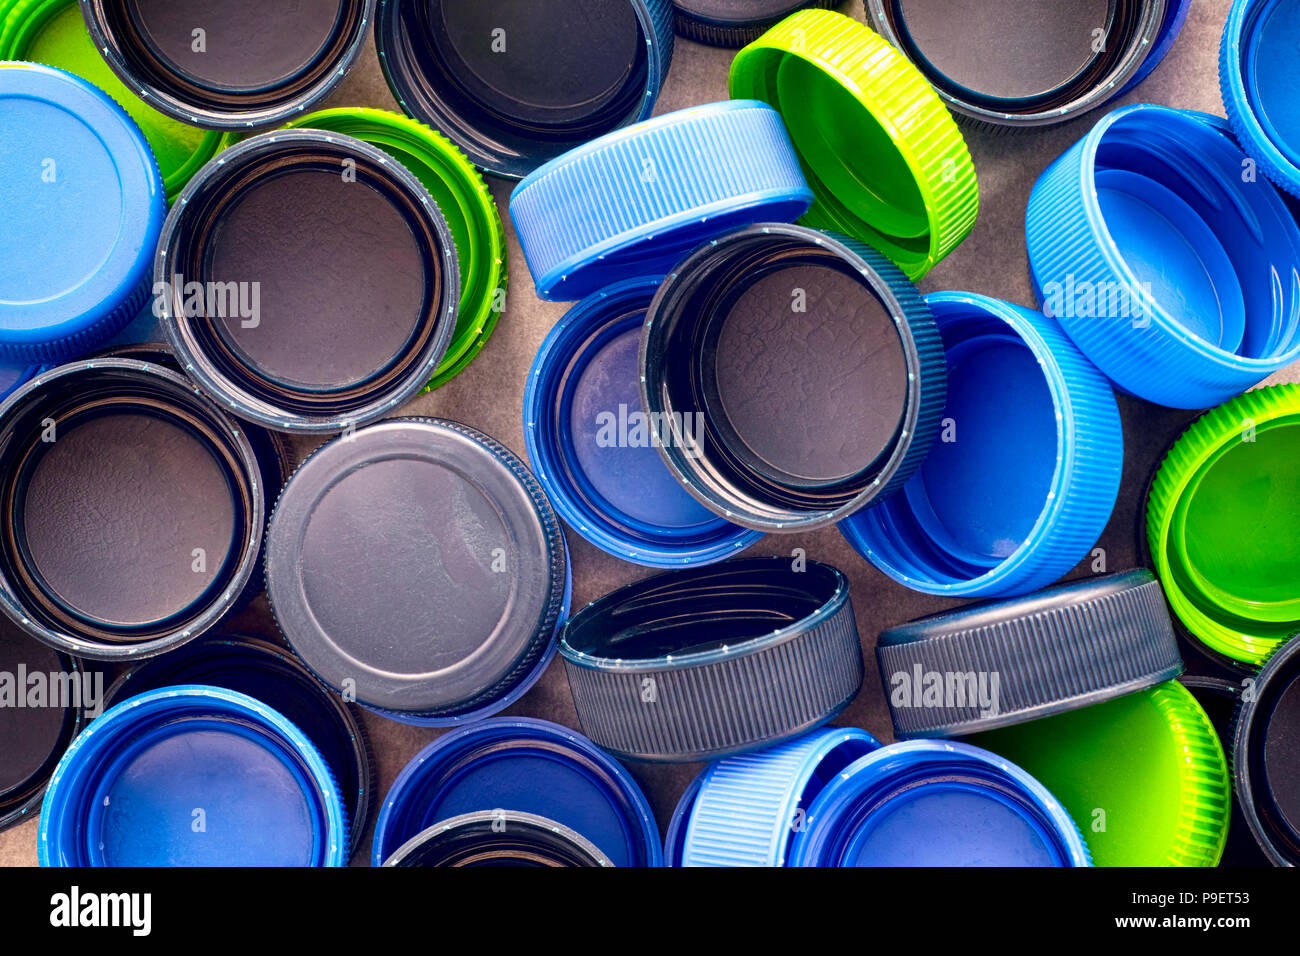 Plastic caps on black background. Close-up. - Stock Image